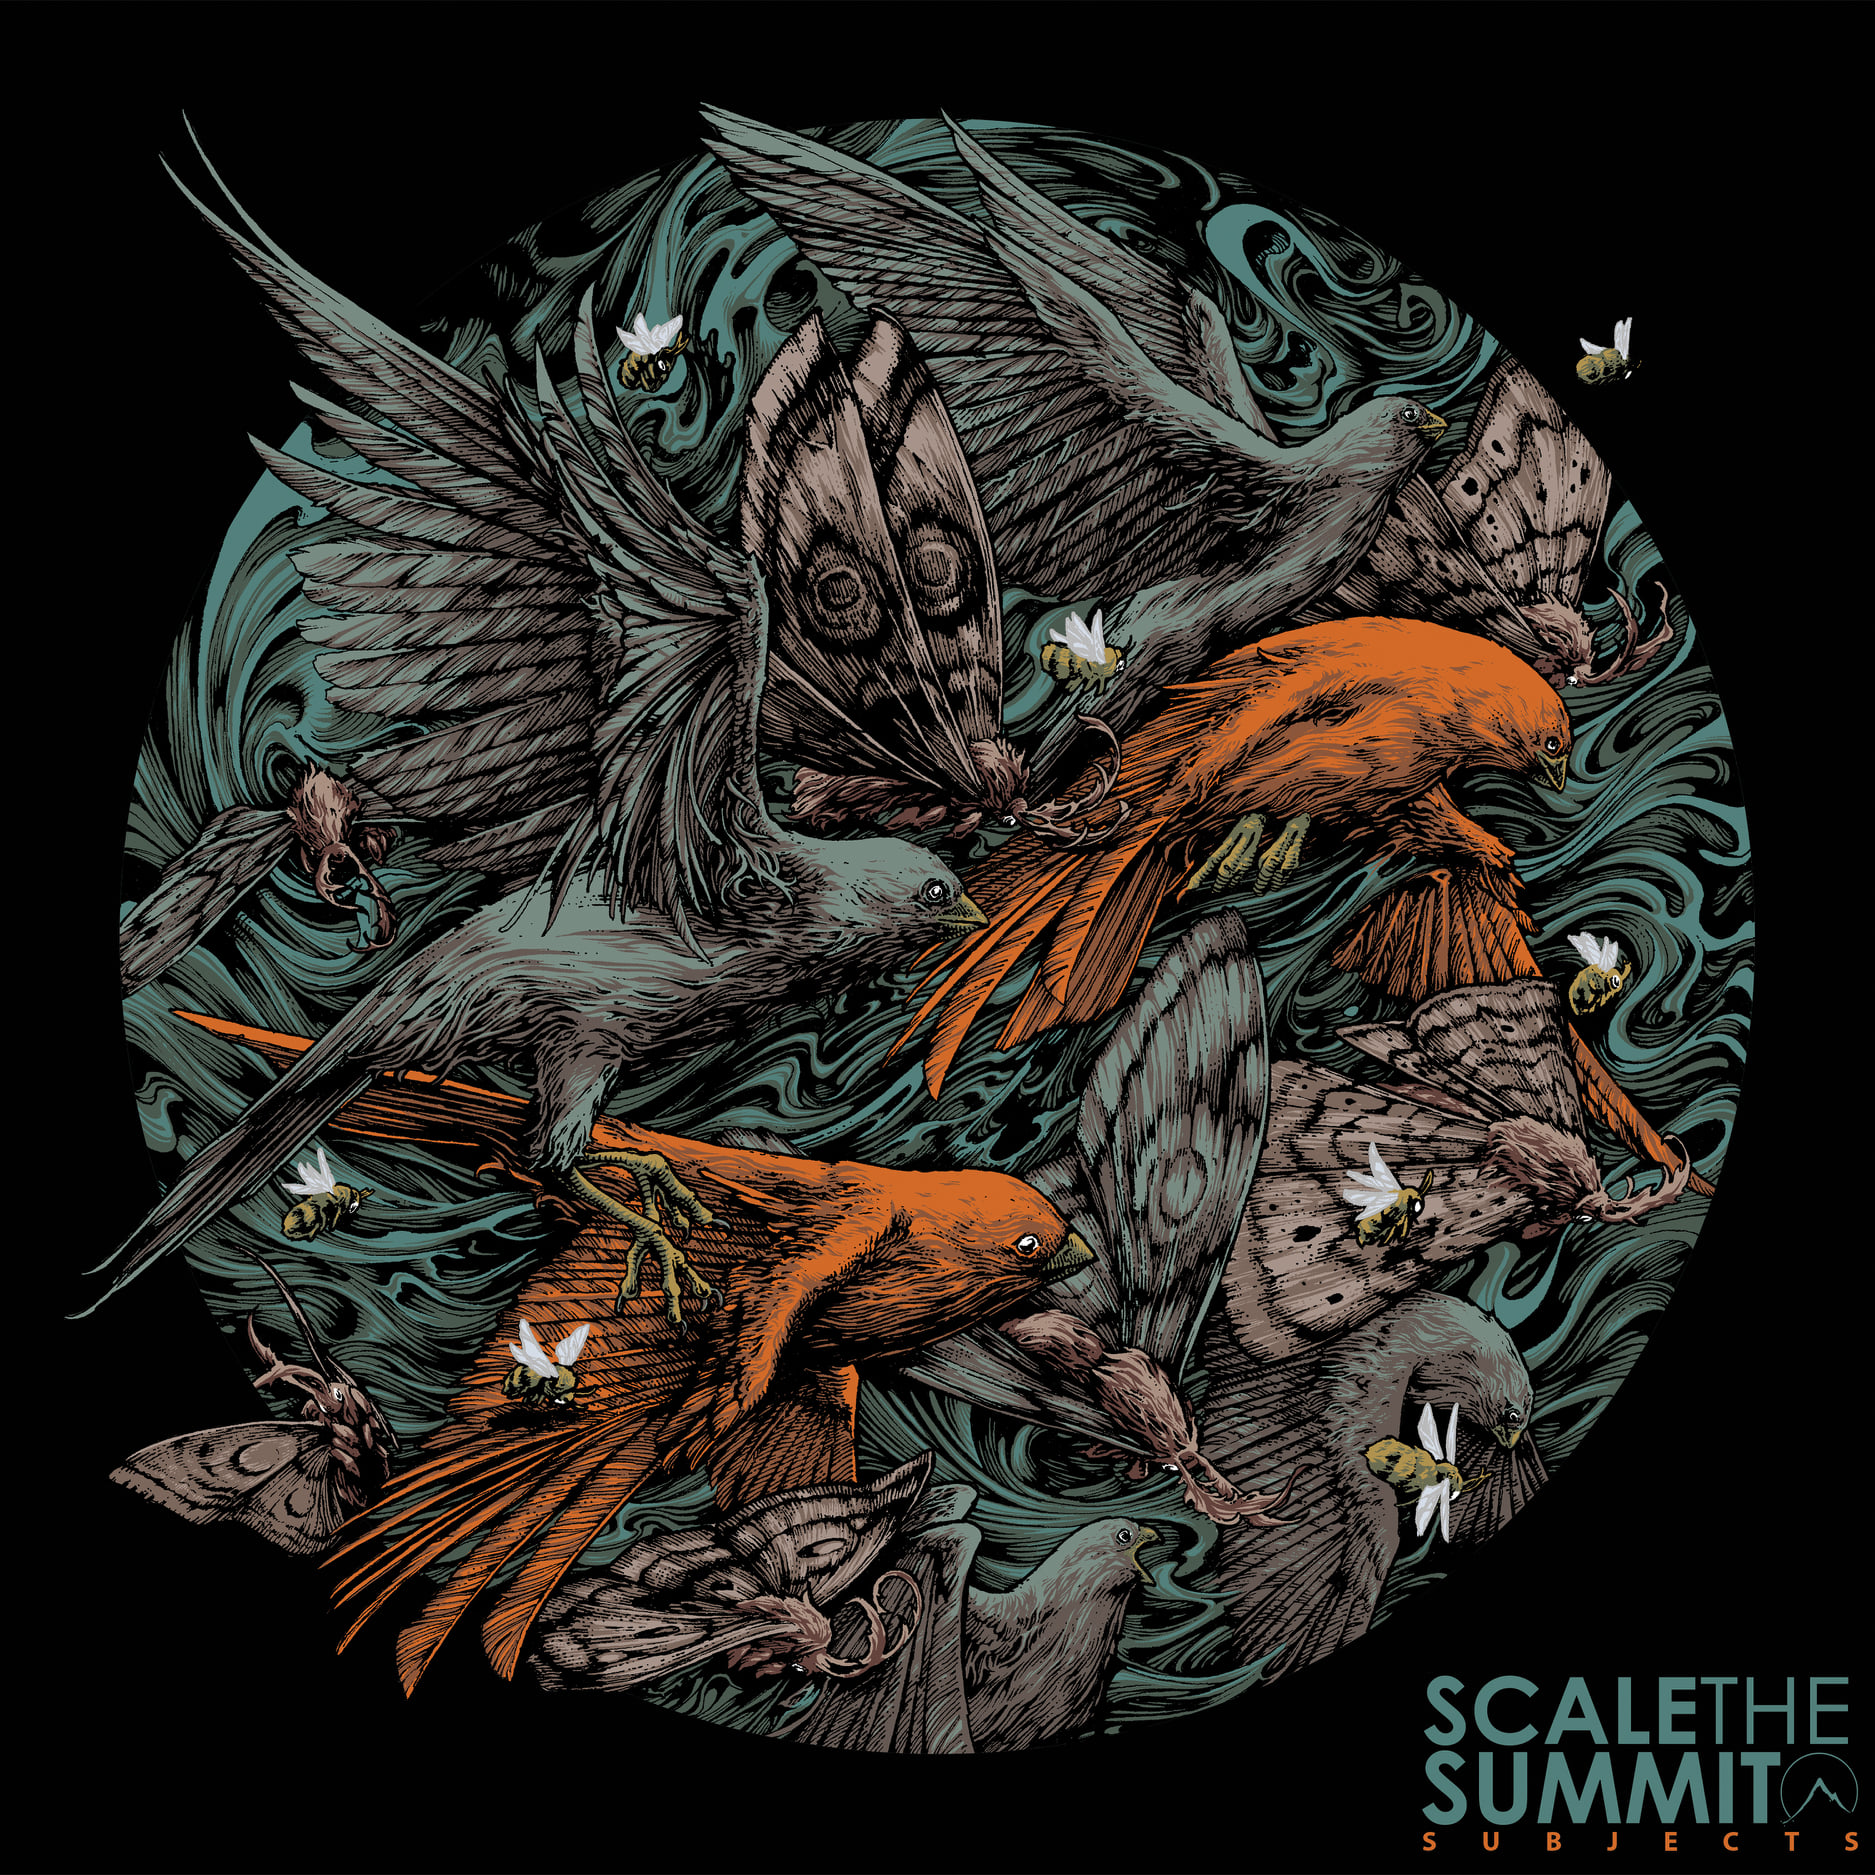 Scale the Summit announce new album 'Subjects' with guests vocalists - The  Prog Report